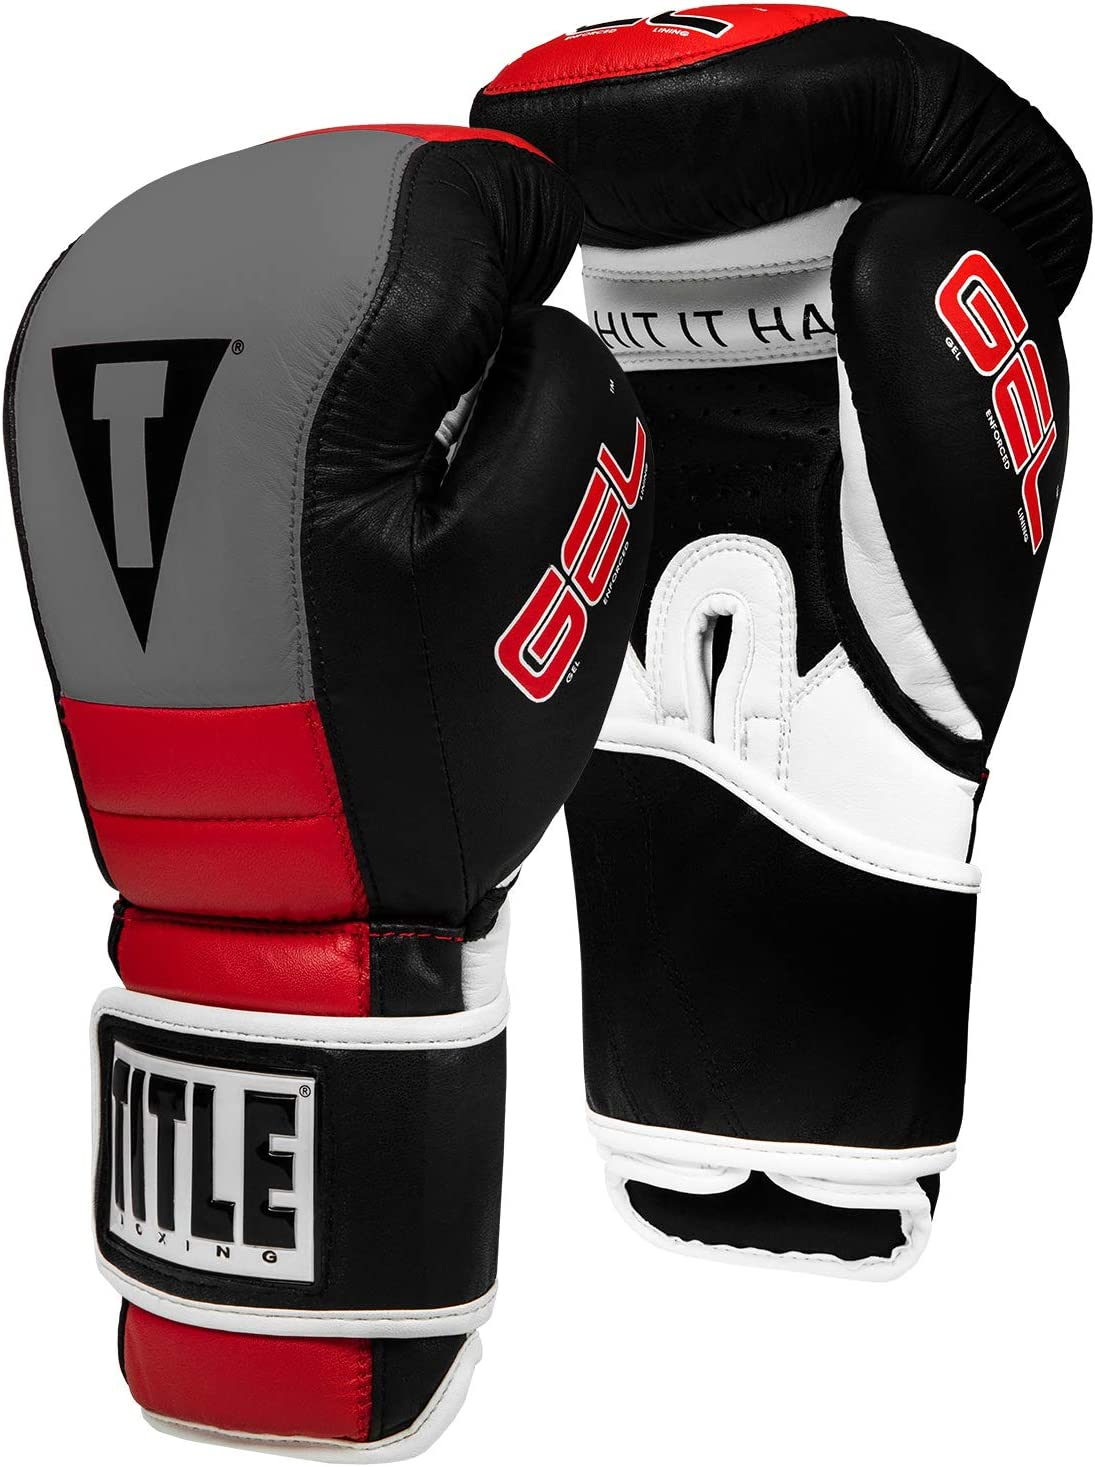 Title Gel Rush Max 88% OFF Gloves Bag Max 56% OFF